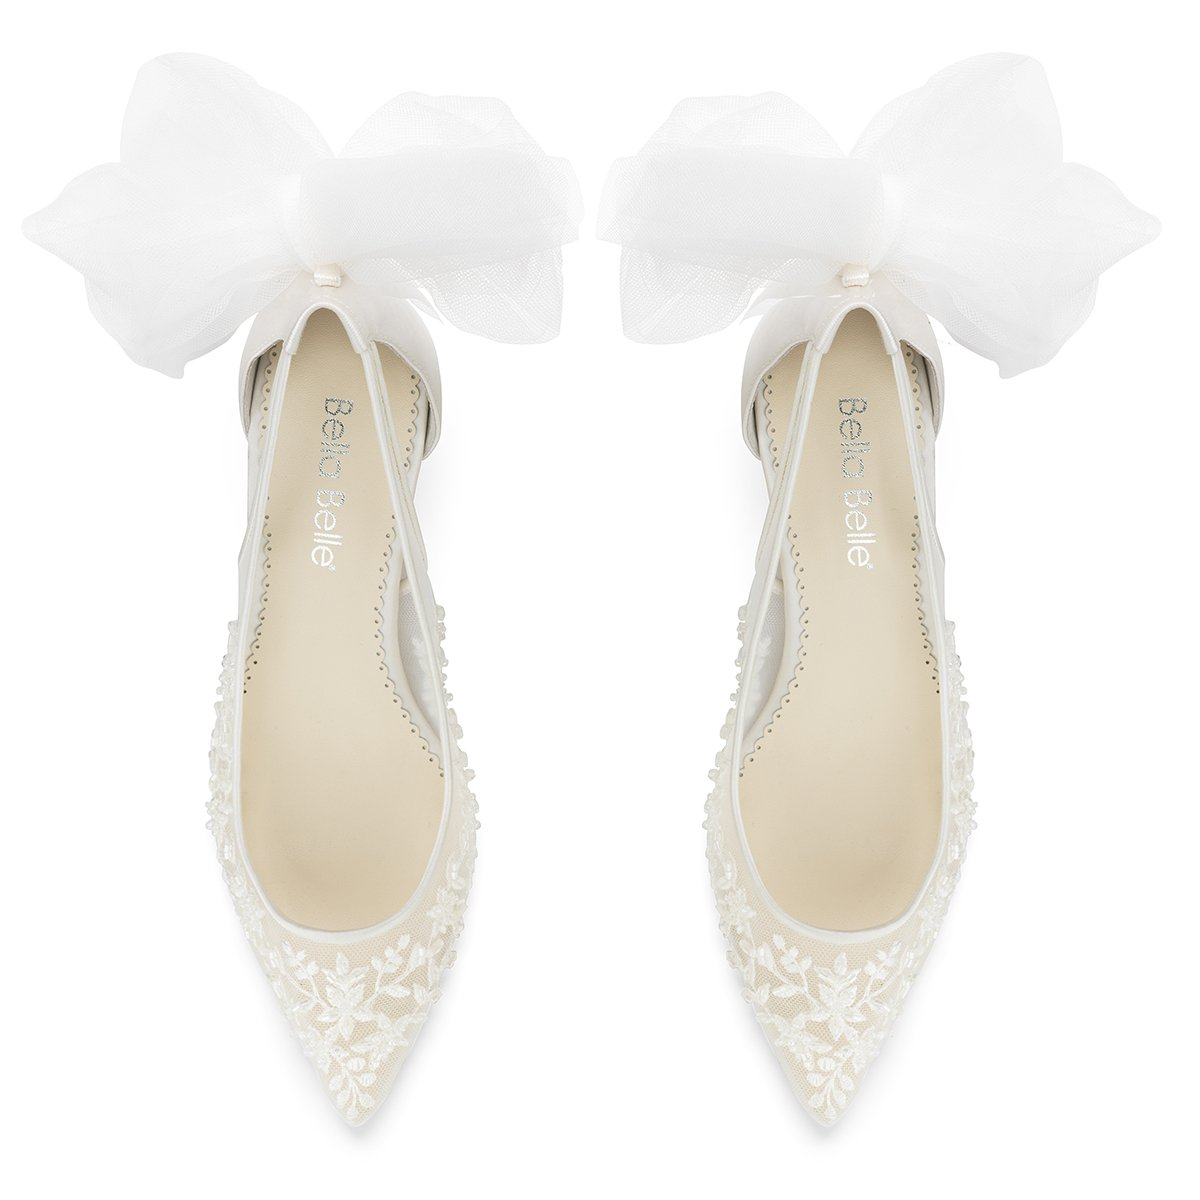 Esther - Floral and Tulle Bow Kitten Heel